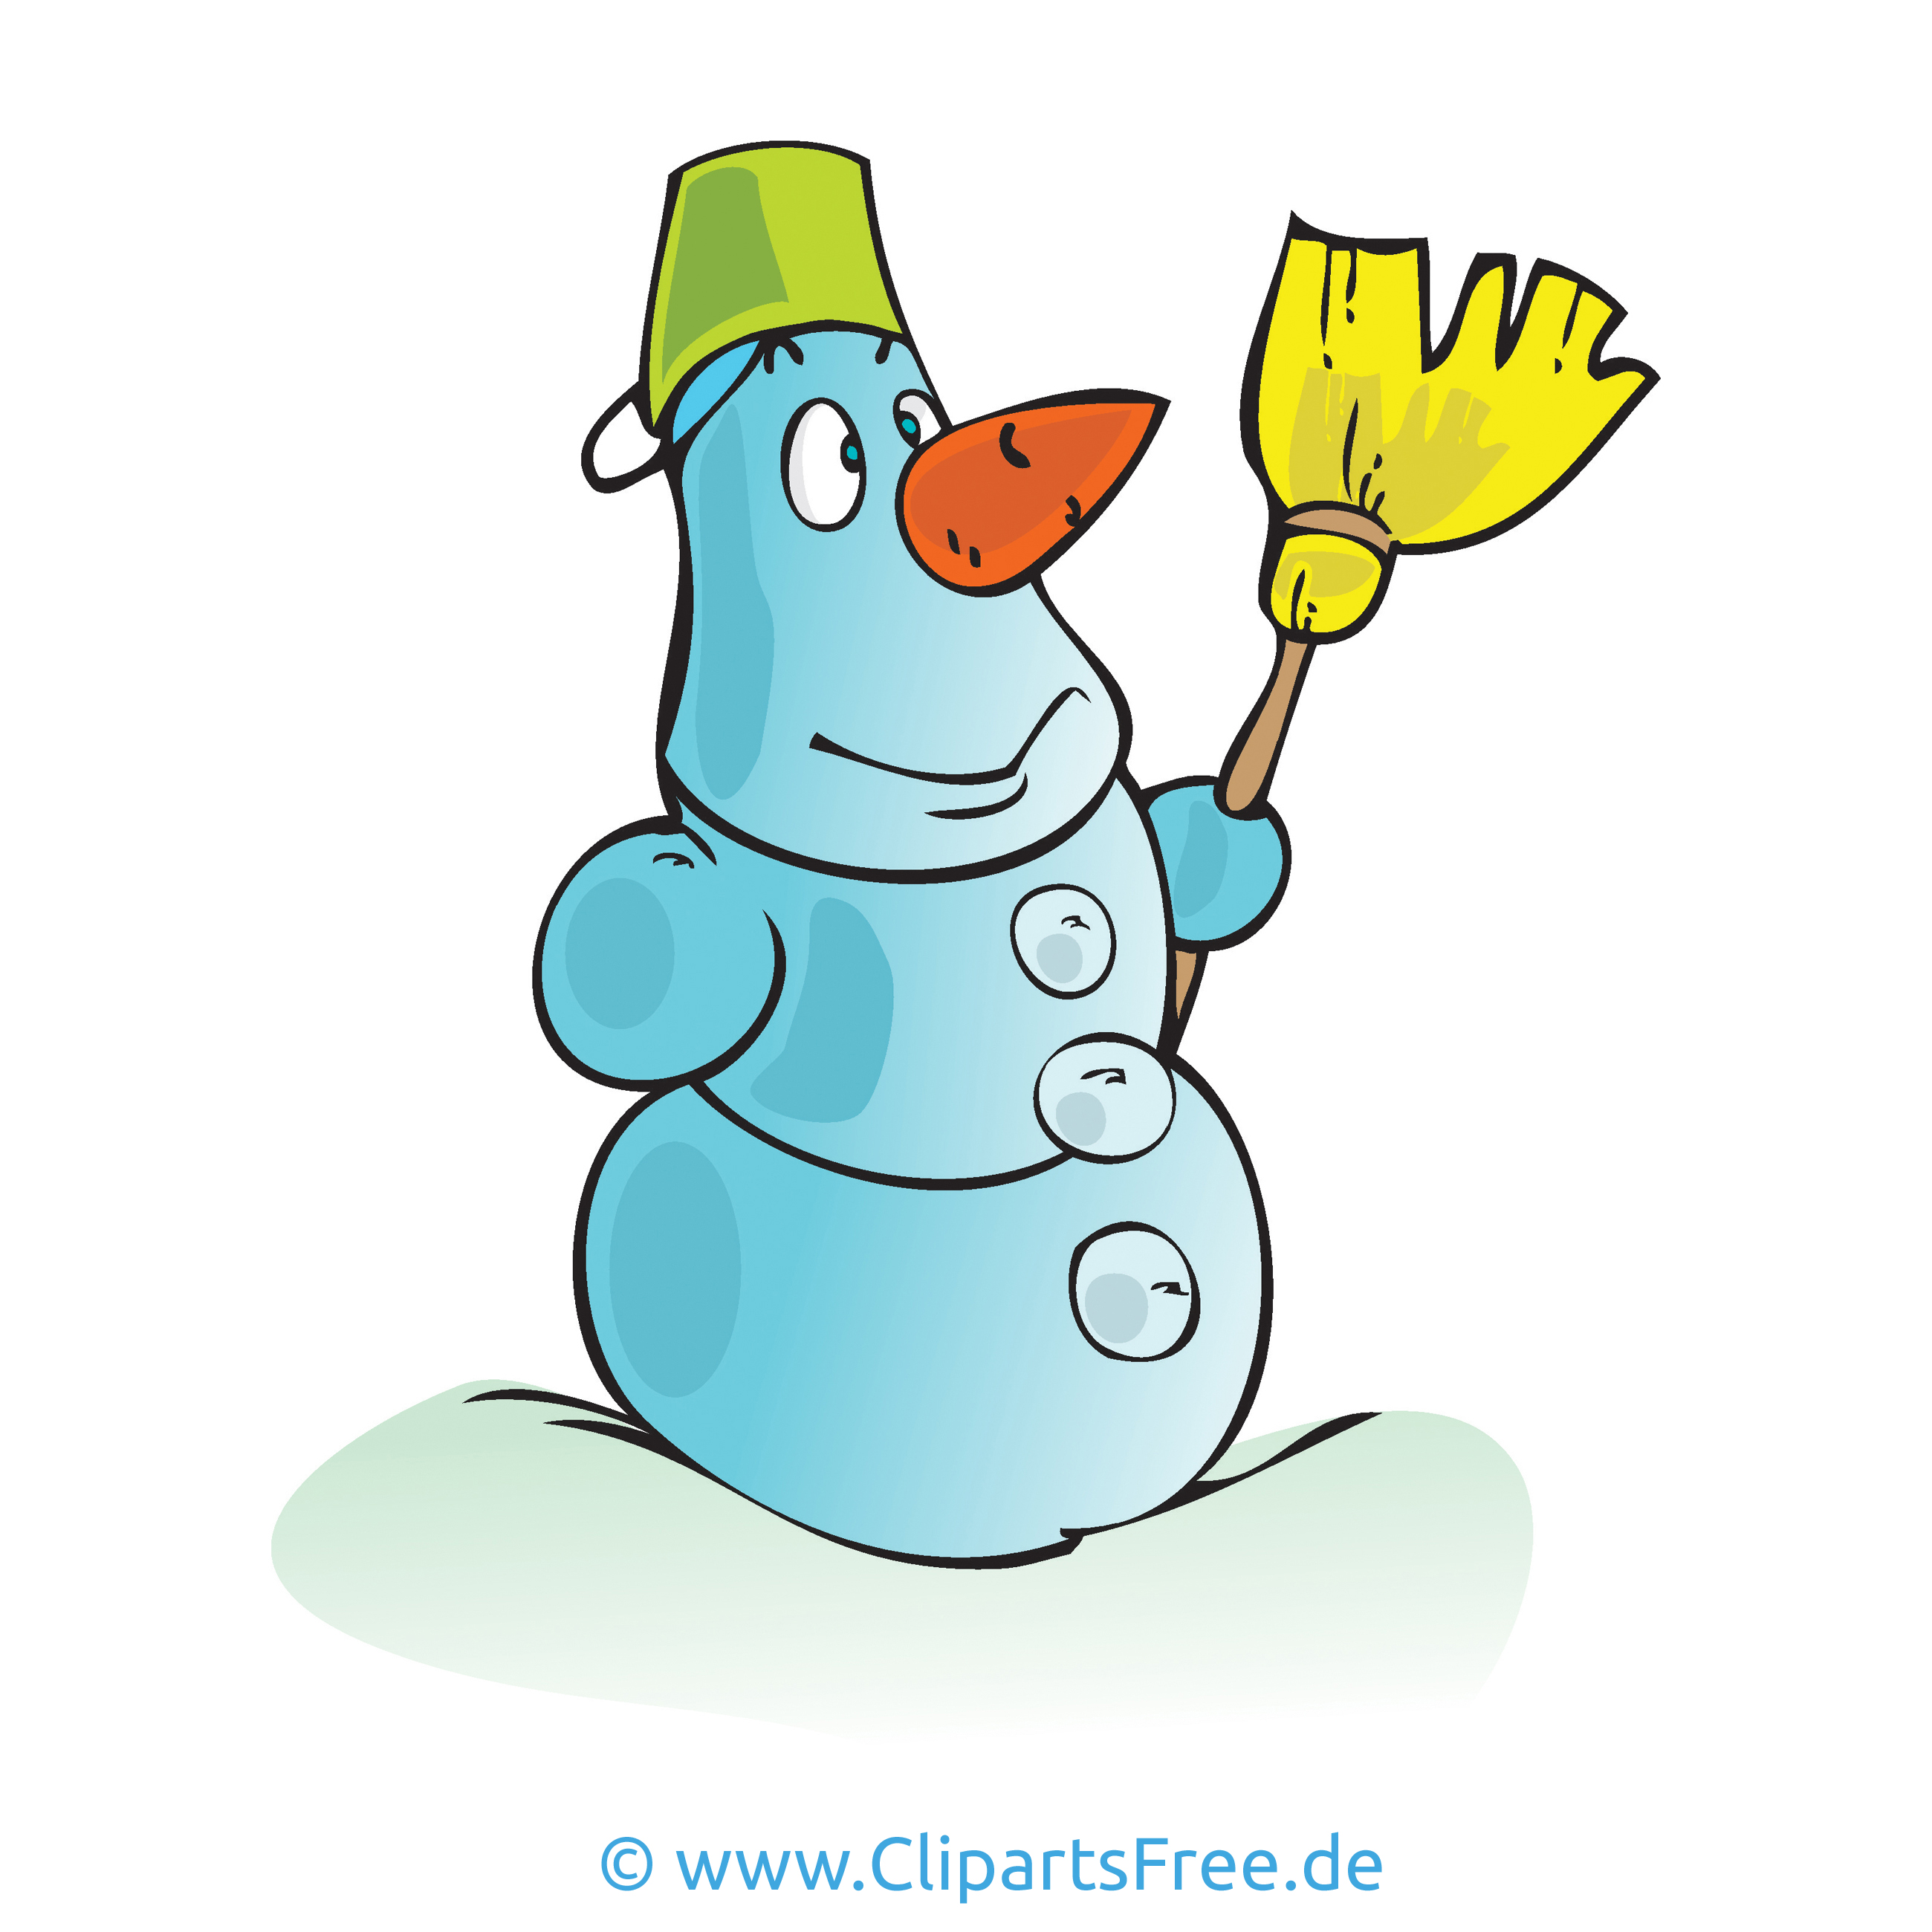 Schneemann Clipart Bild Cartoon Grafik Illustration